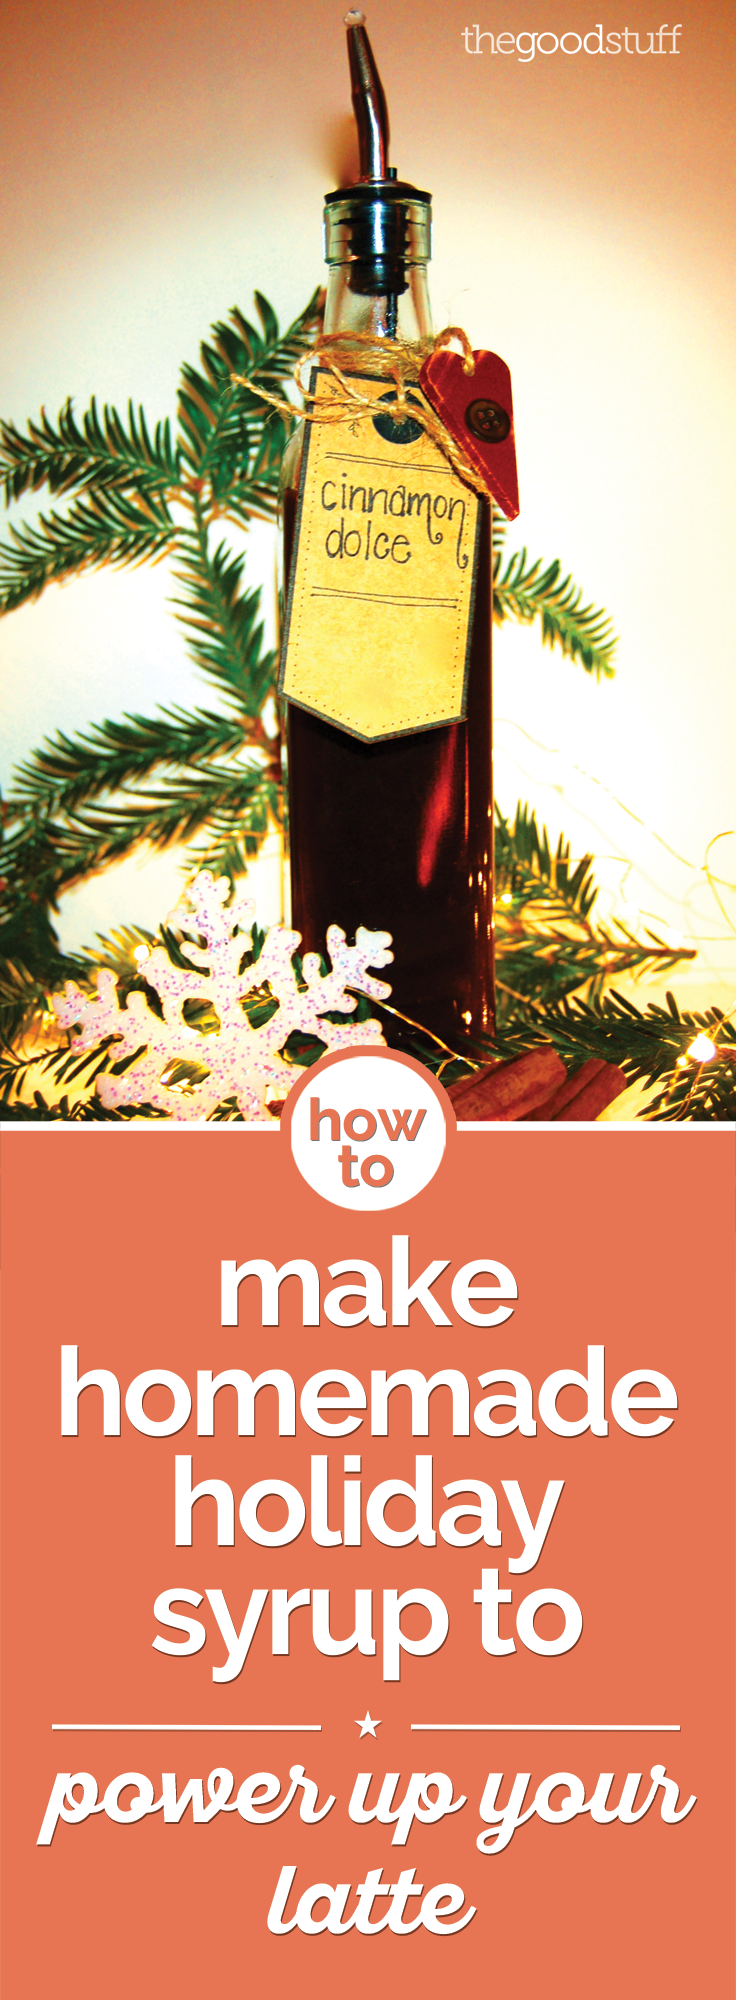 How to Make Homemade Holiday Syrup to Power Up Your Latte | thegoodstuff